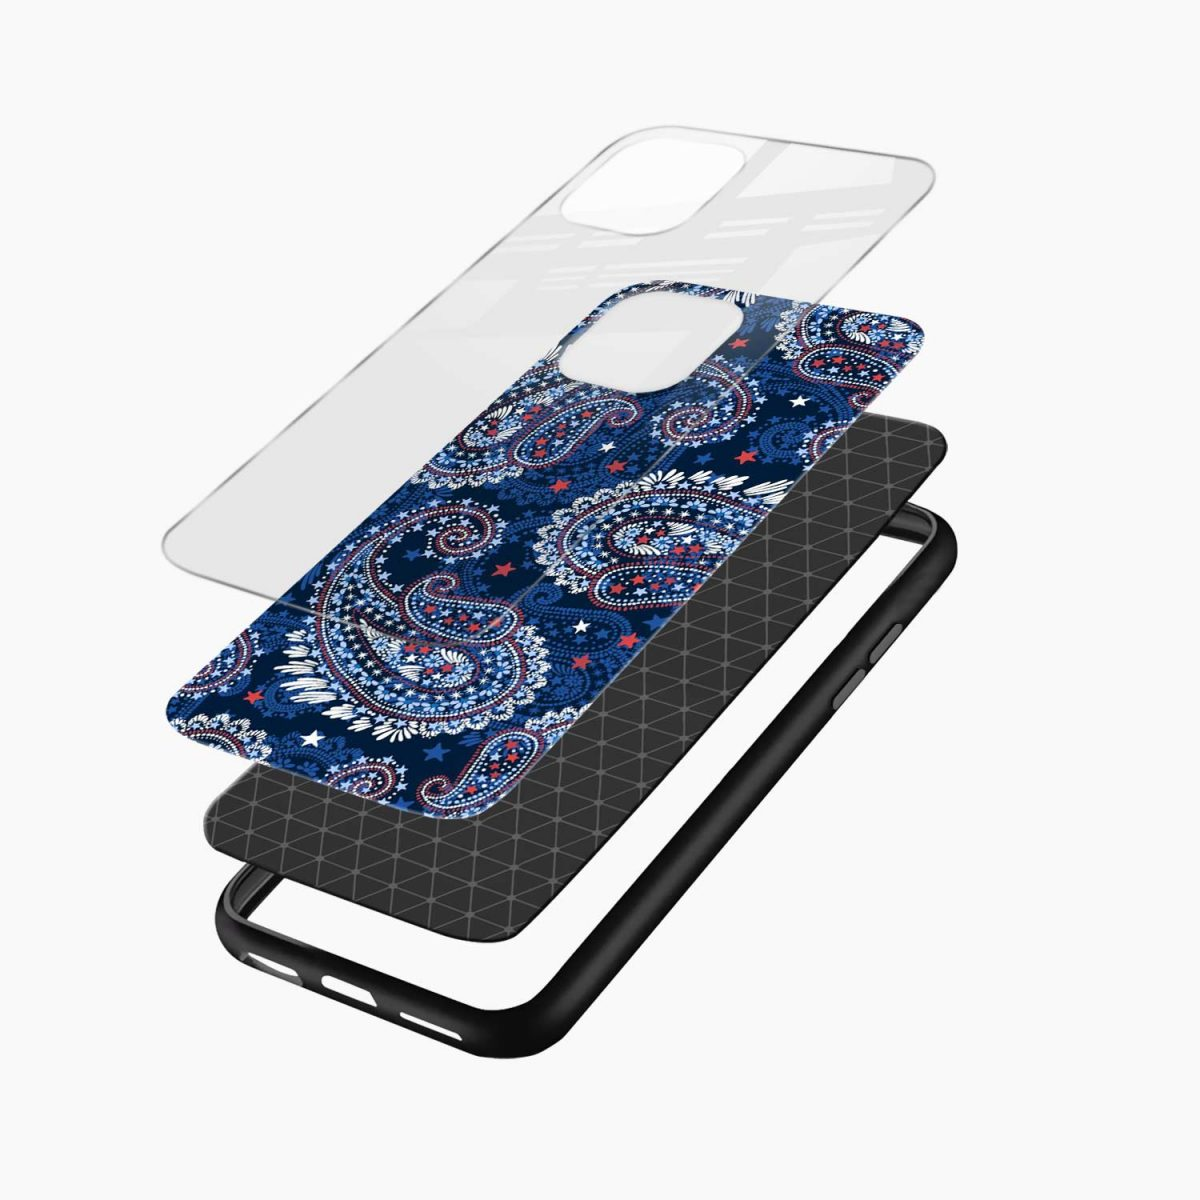 blue colored classical pattern iphone back cover layers view